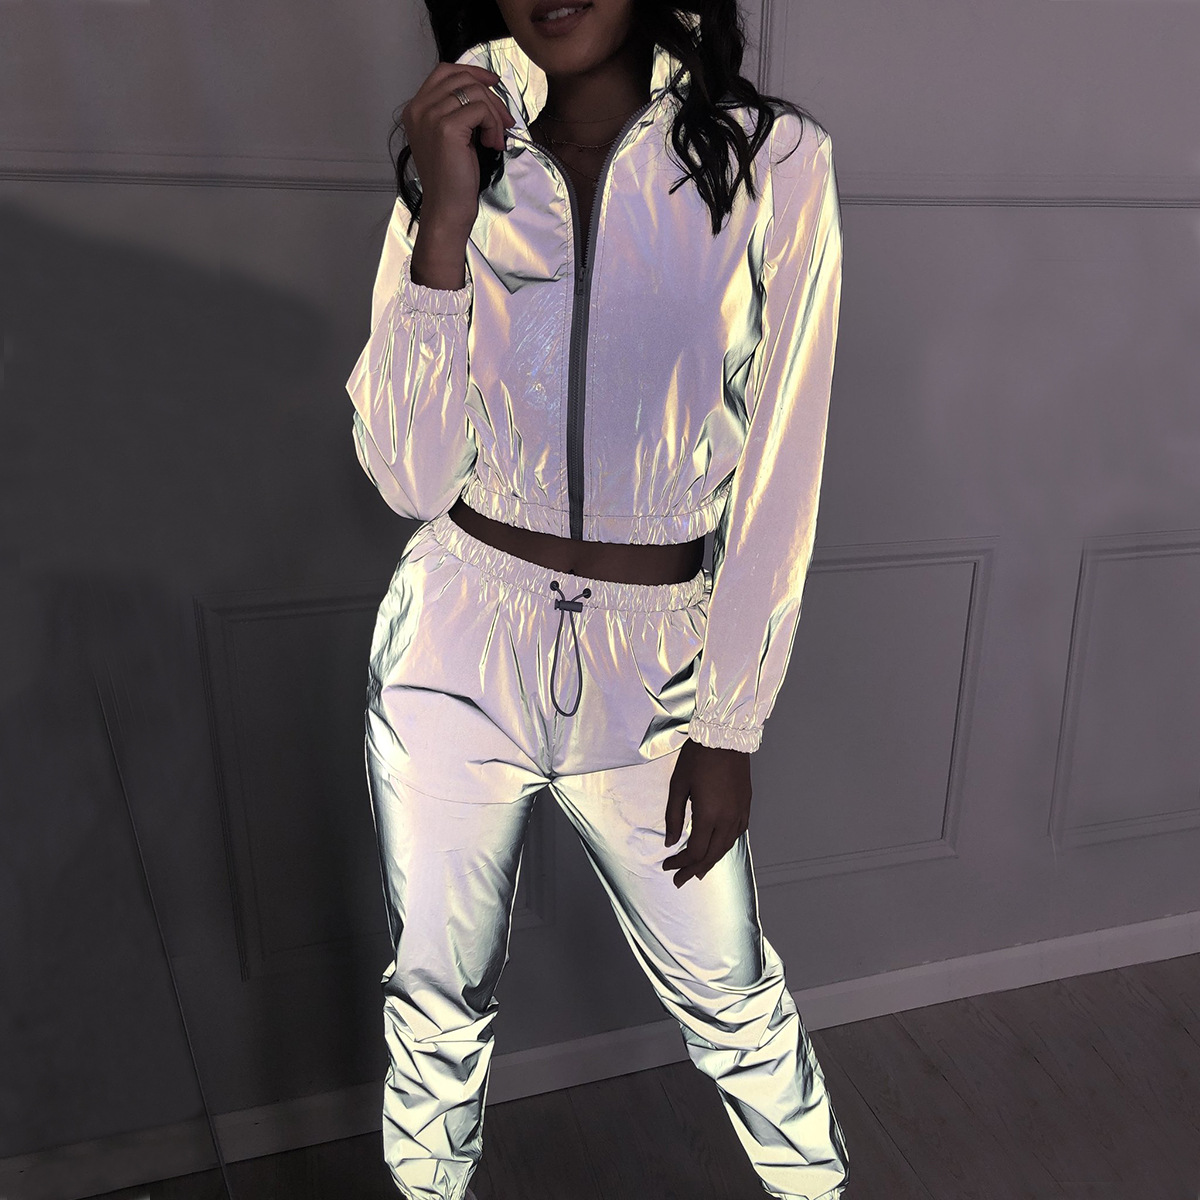 Fashion  2 Piece Women Tracksuits Set Reflective Jacket And Long Pants Ladies Loose Zipper Shine Sweatsuit Outfits Sets